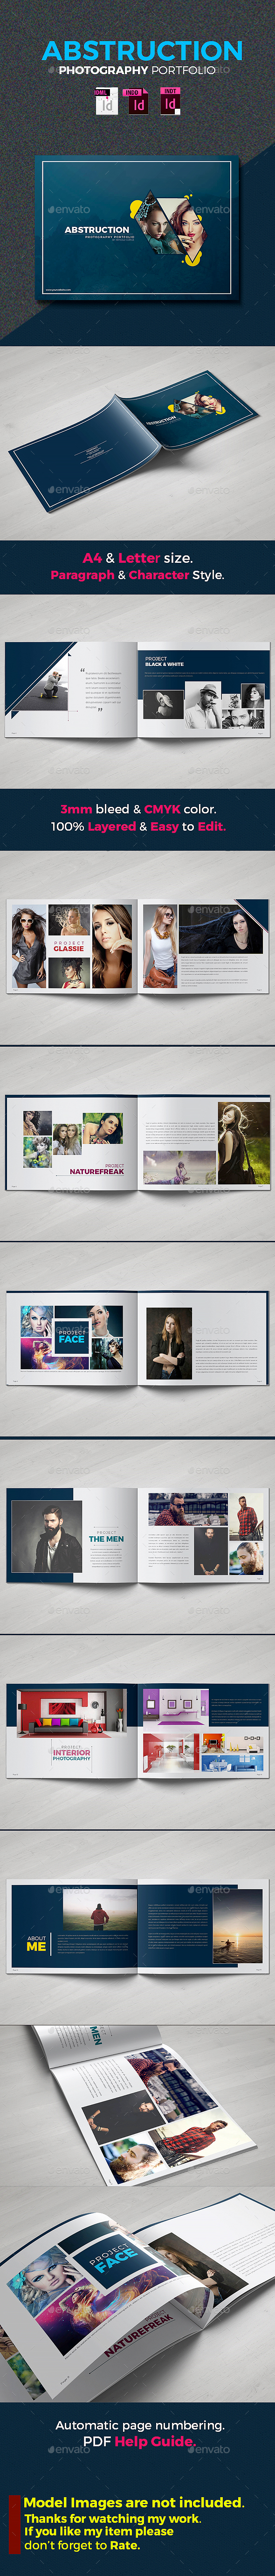 Abstruction - Photography Portfolio Brochure Template InDesign INDD ...